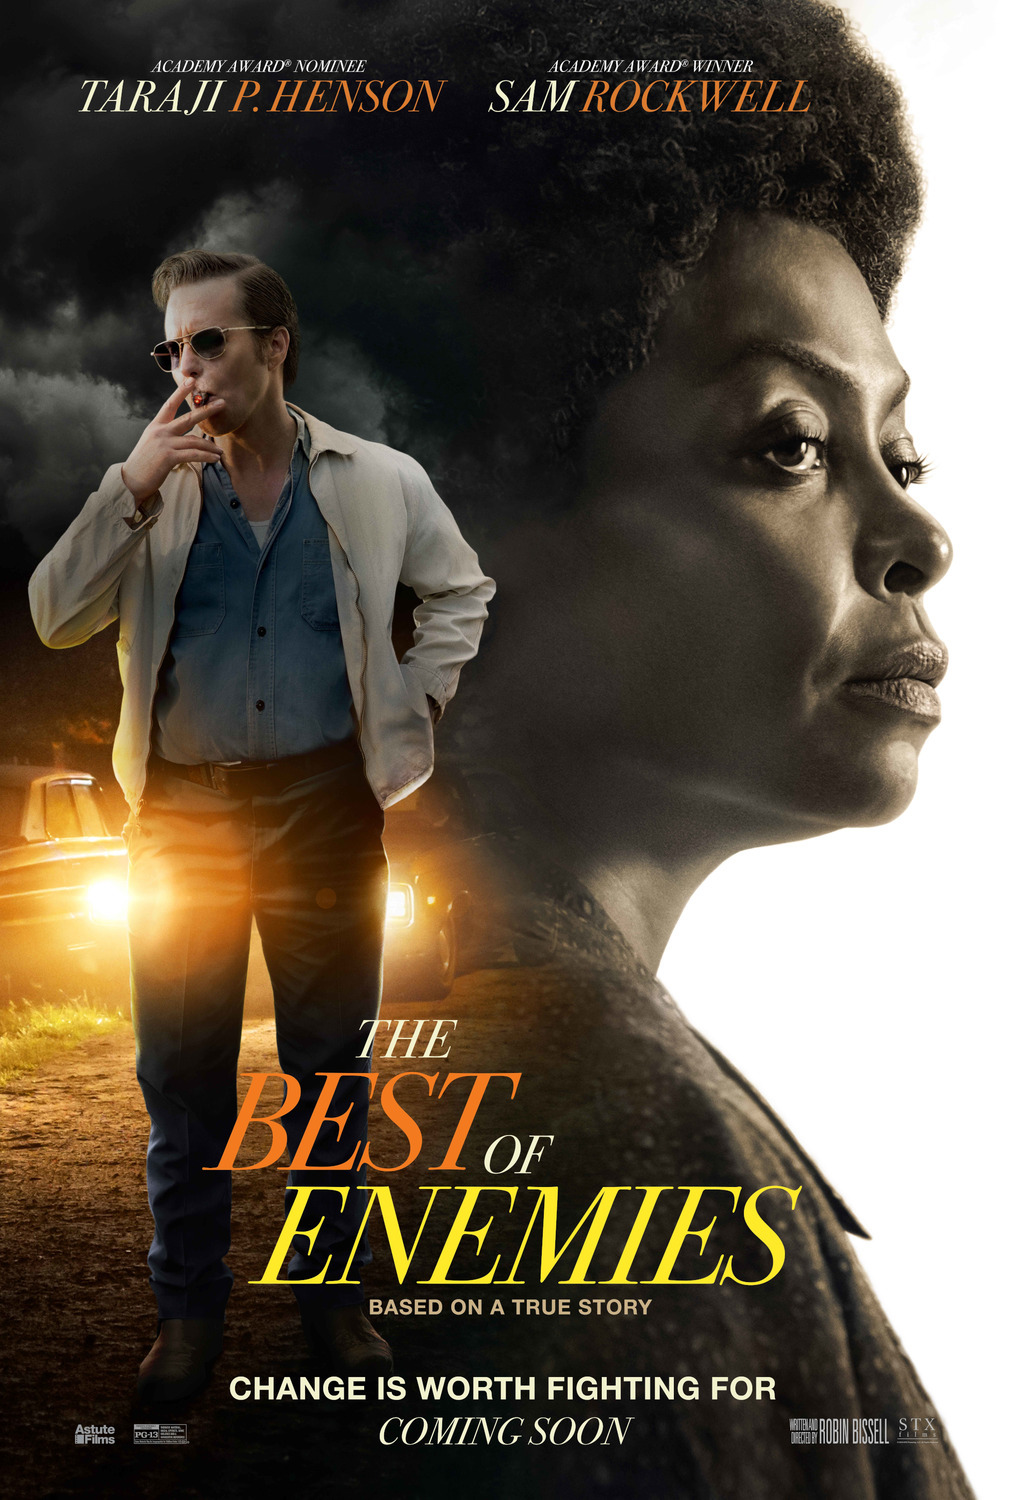 Best of Enemies (2019) - Directed By: Robin BissellStarring: Taraji P. Henson, Sam Rockwell, Babou Ceesay, Anne Heche, Wes BentleyRated: PG-13Run Time: 2h 13mTMM Score: 2 StarsStrengths: Sam Rockwell, True StoryWeakness: The Film is Very Paint by Numbers